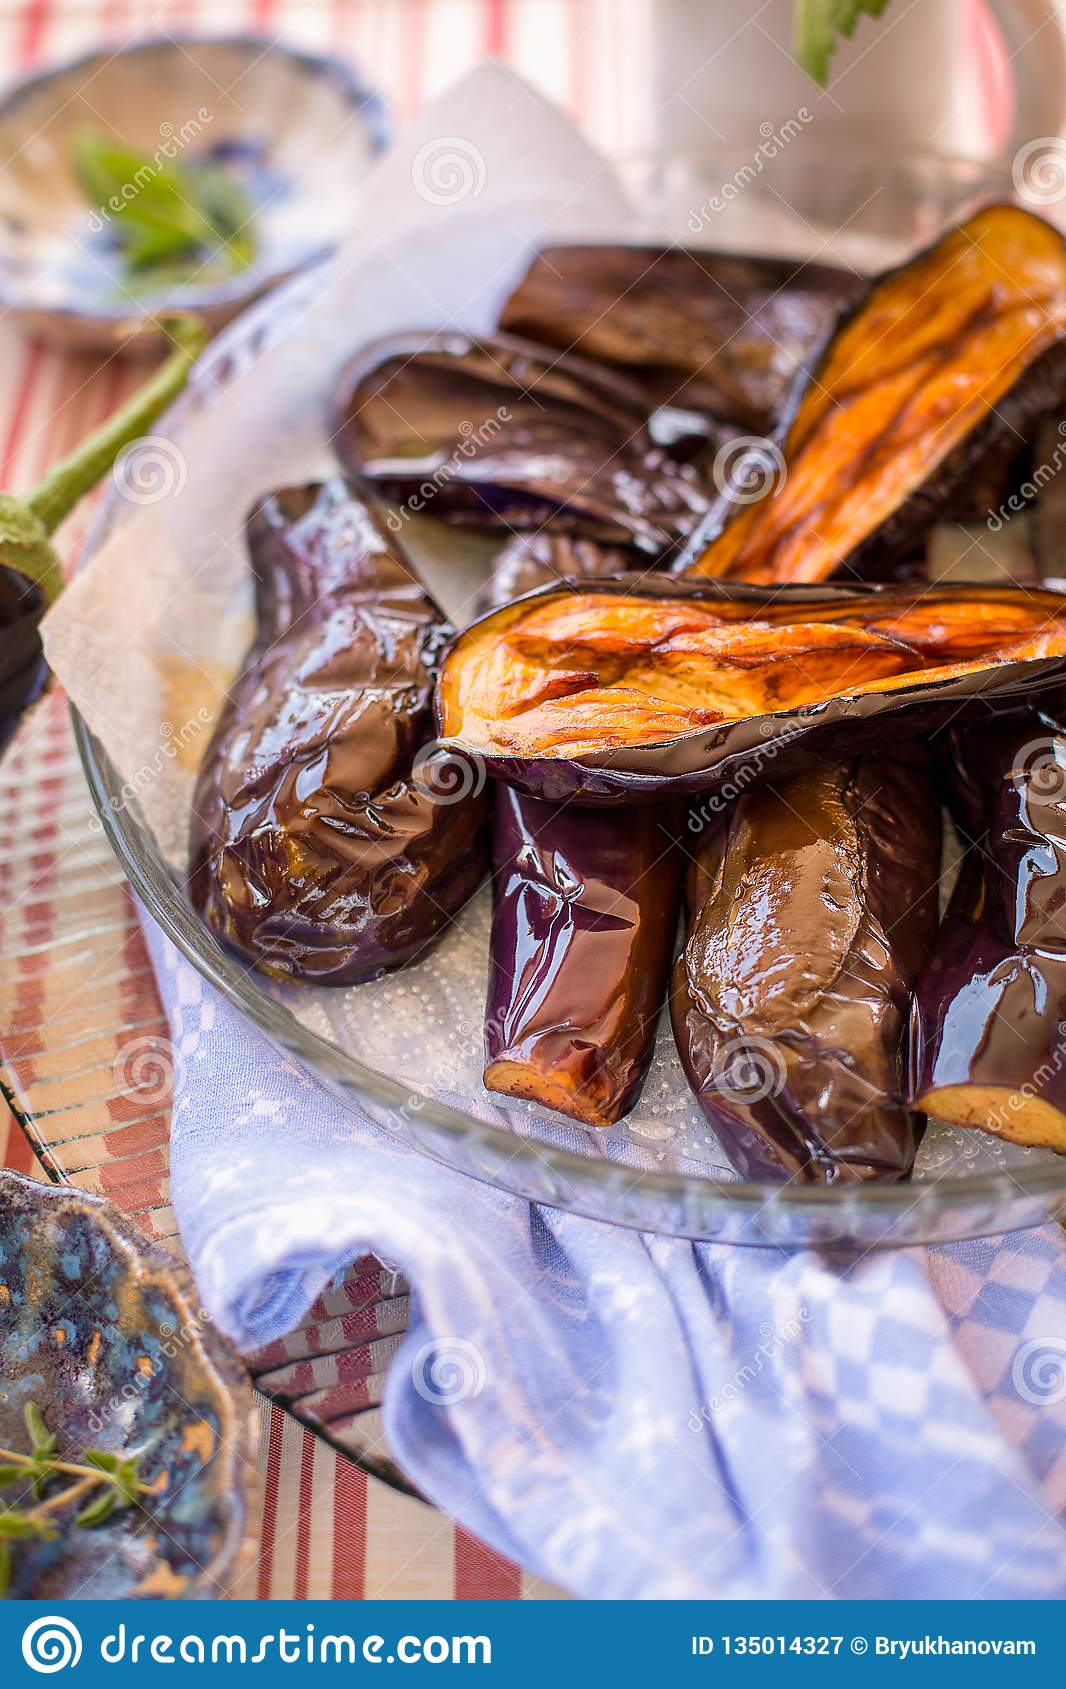 Grilled aubergines on a plate